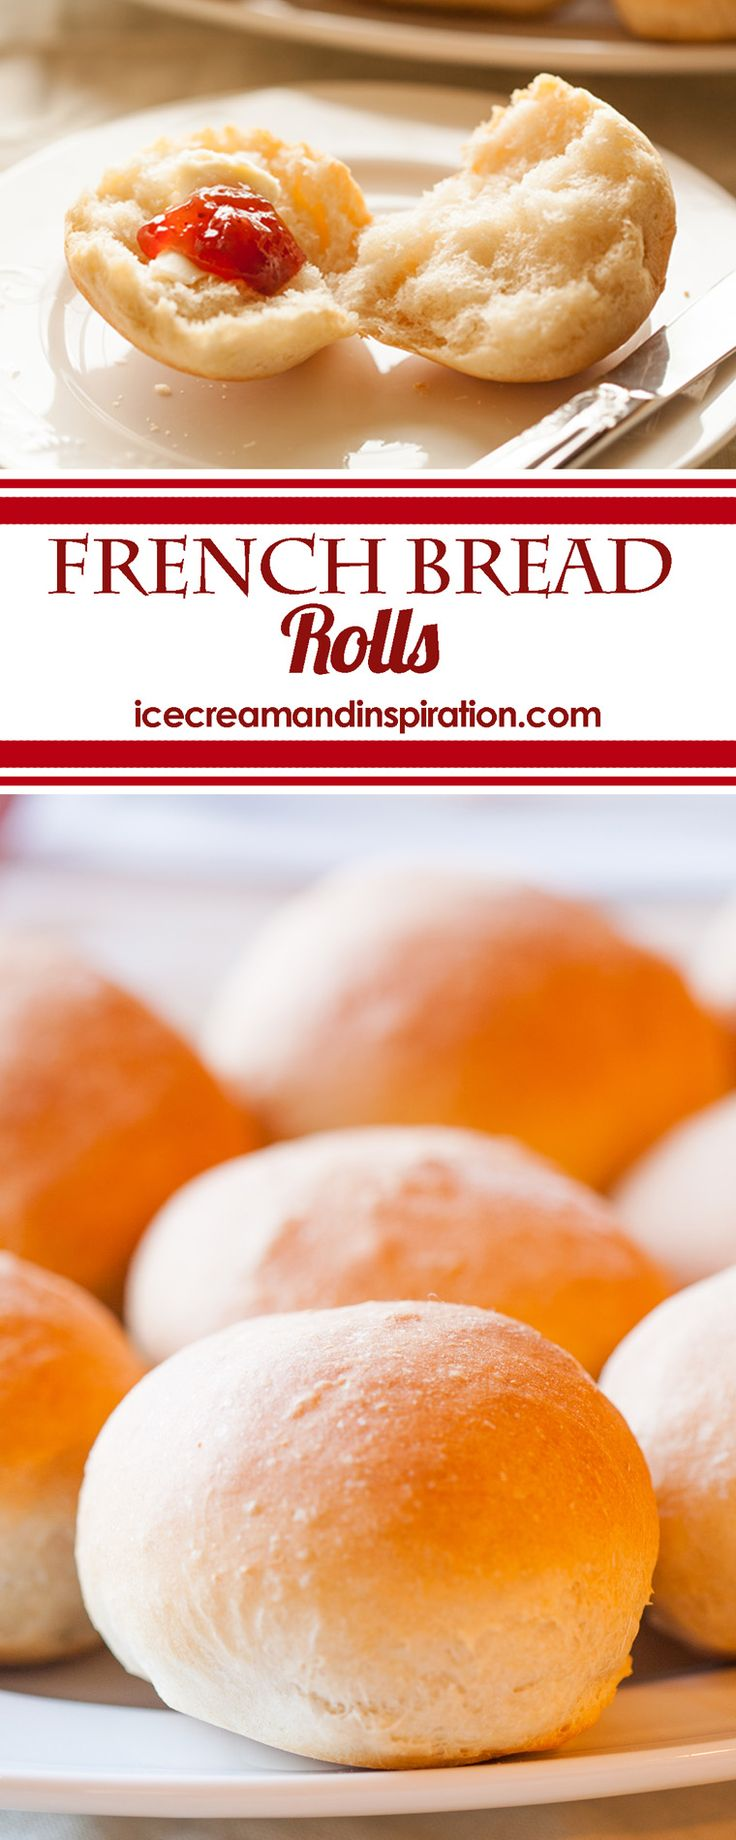 Easily make these soft, fluffy French Bread Rolls with just six simple ingredients. They taste just like the famous French bread that you love!